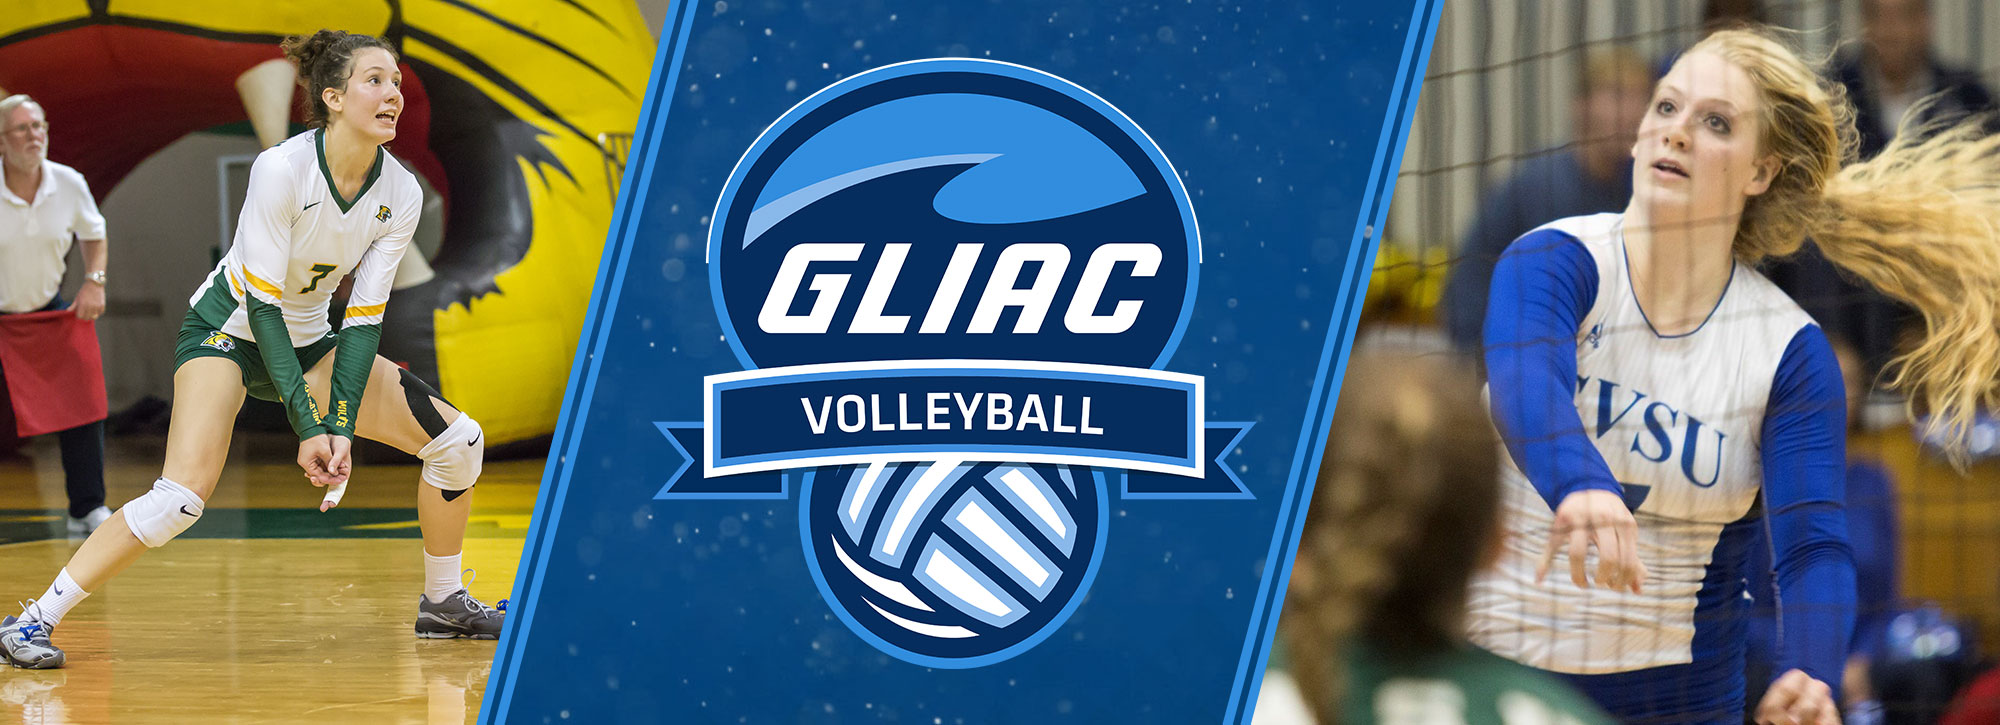 Northern Michigan's Antunes, Grand Valley State's Brower Earn GLIAC Volleyball Honors